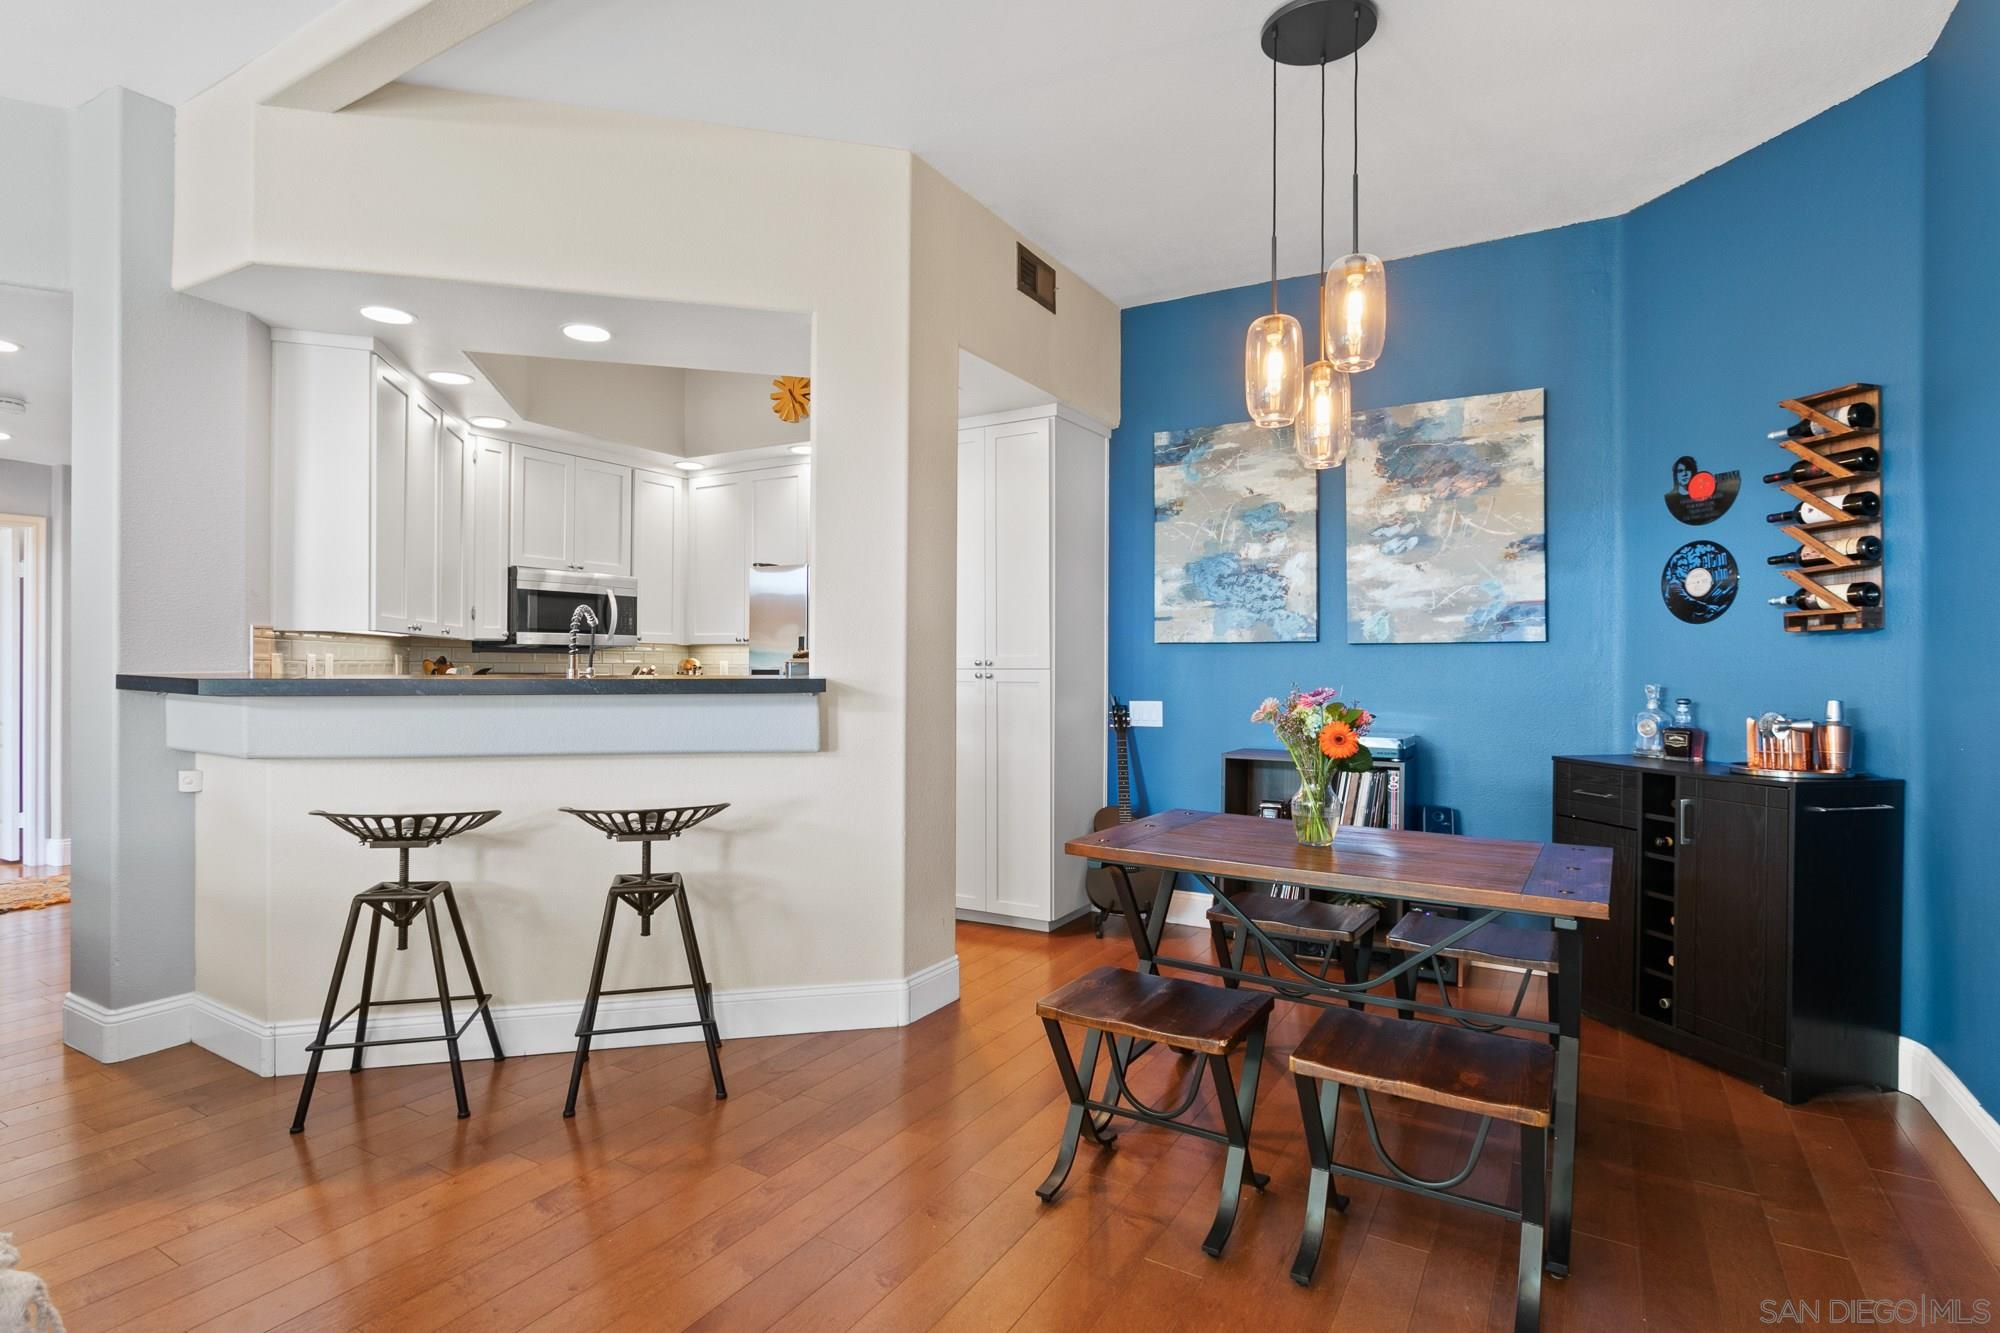 Main Photo: CARMEL MOUNTAIN RANCH Condo for sale : 2 bedrooms : 11274 Provencal Place in San Diego